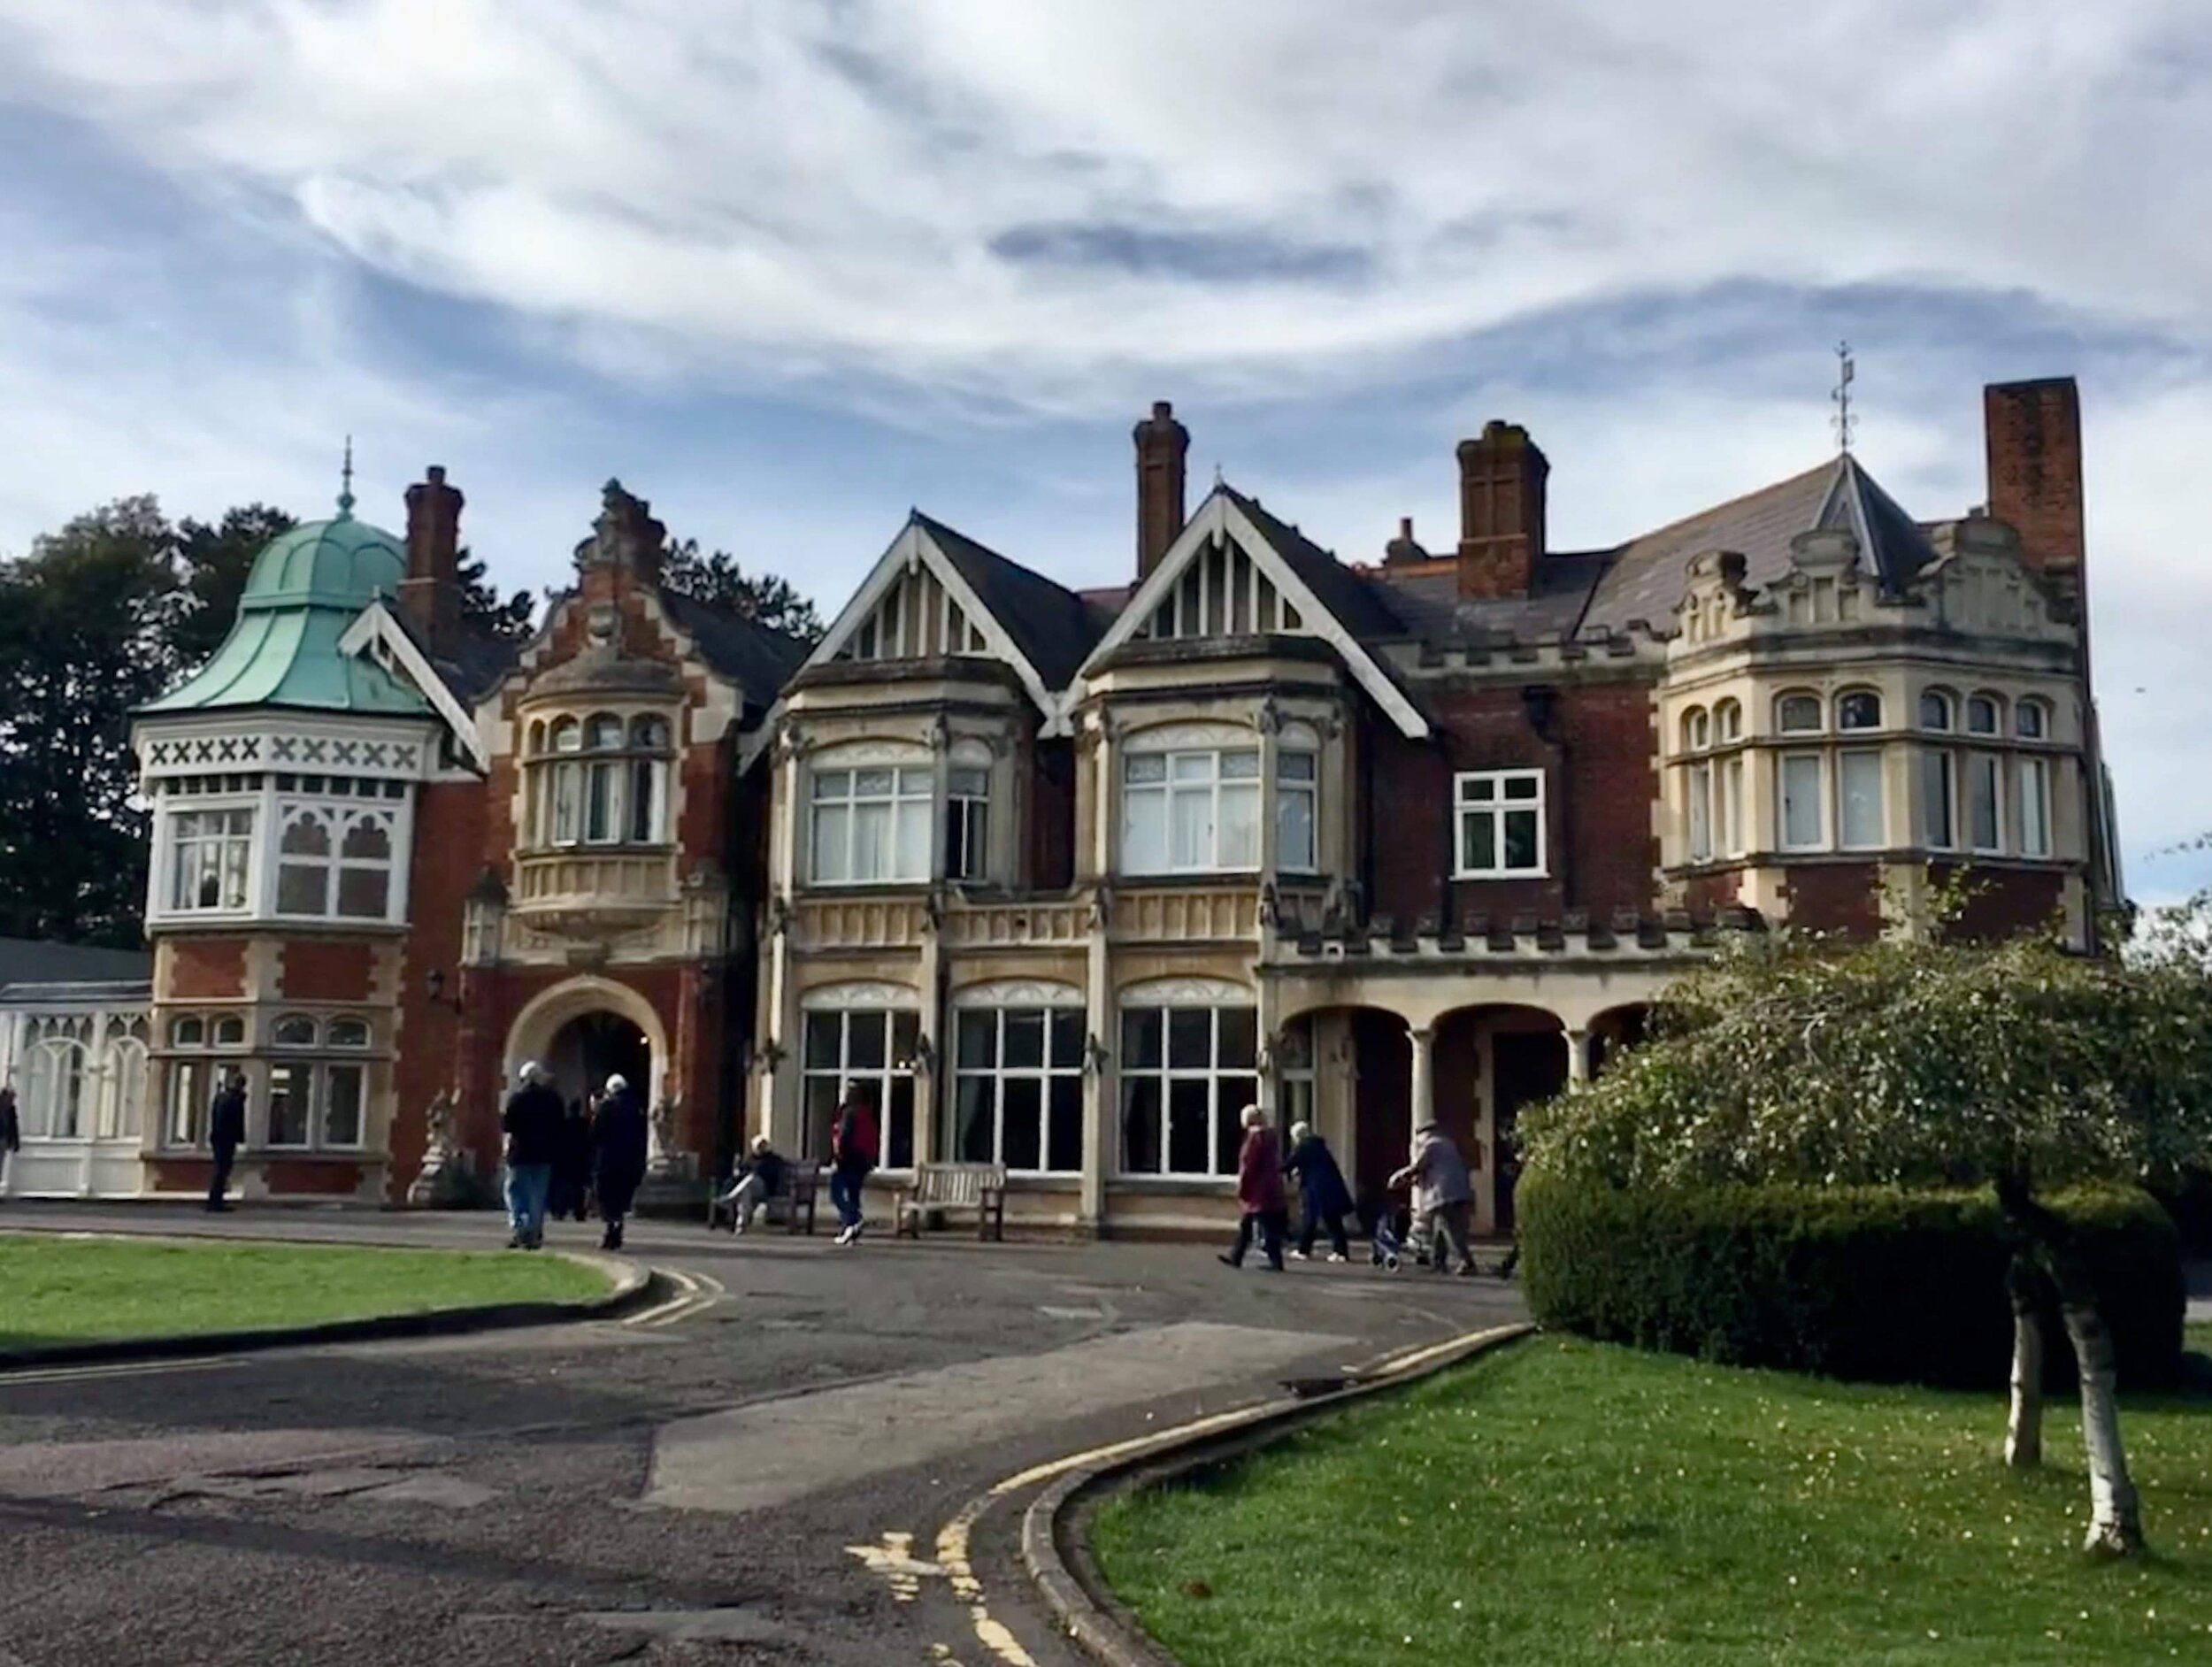 That Bletchley Park was a manor estate was deceptive in itself